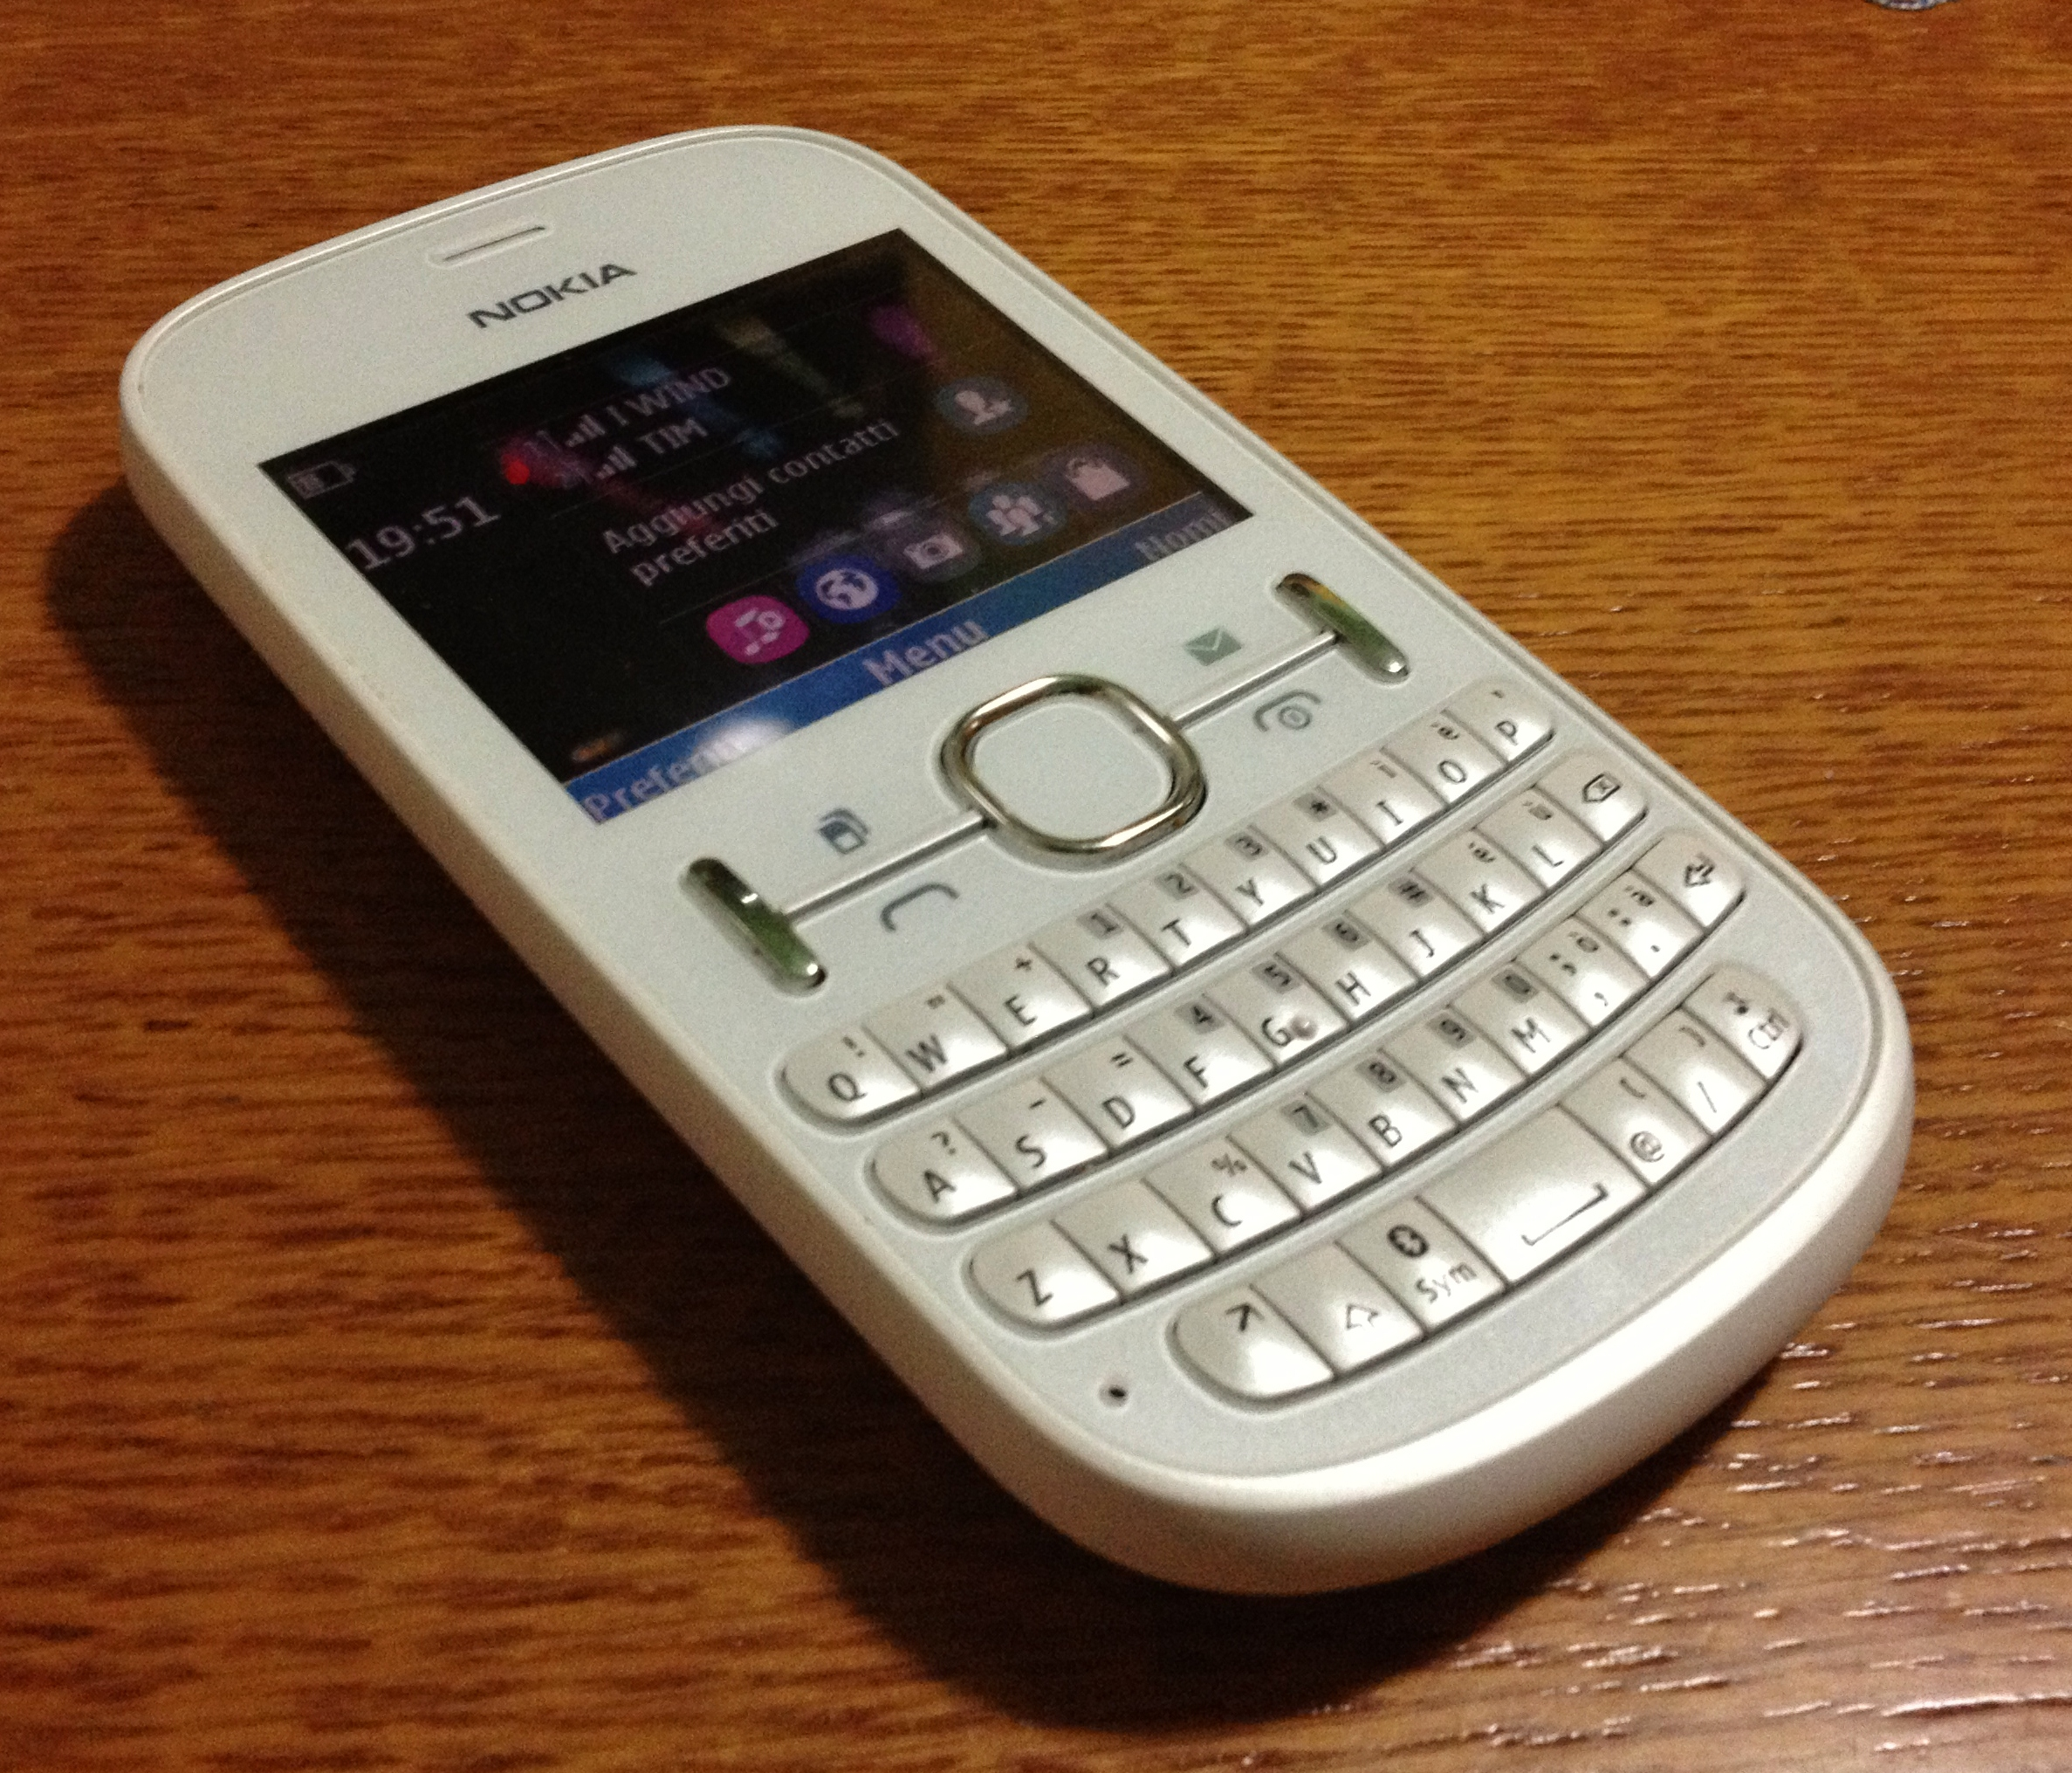 File:Nokia Asha 200 white.JPG - Wikimedia Commons